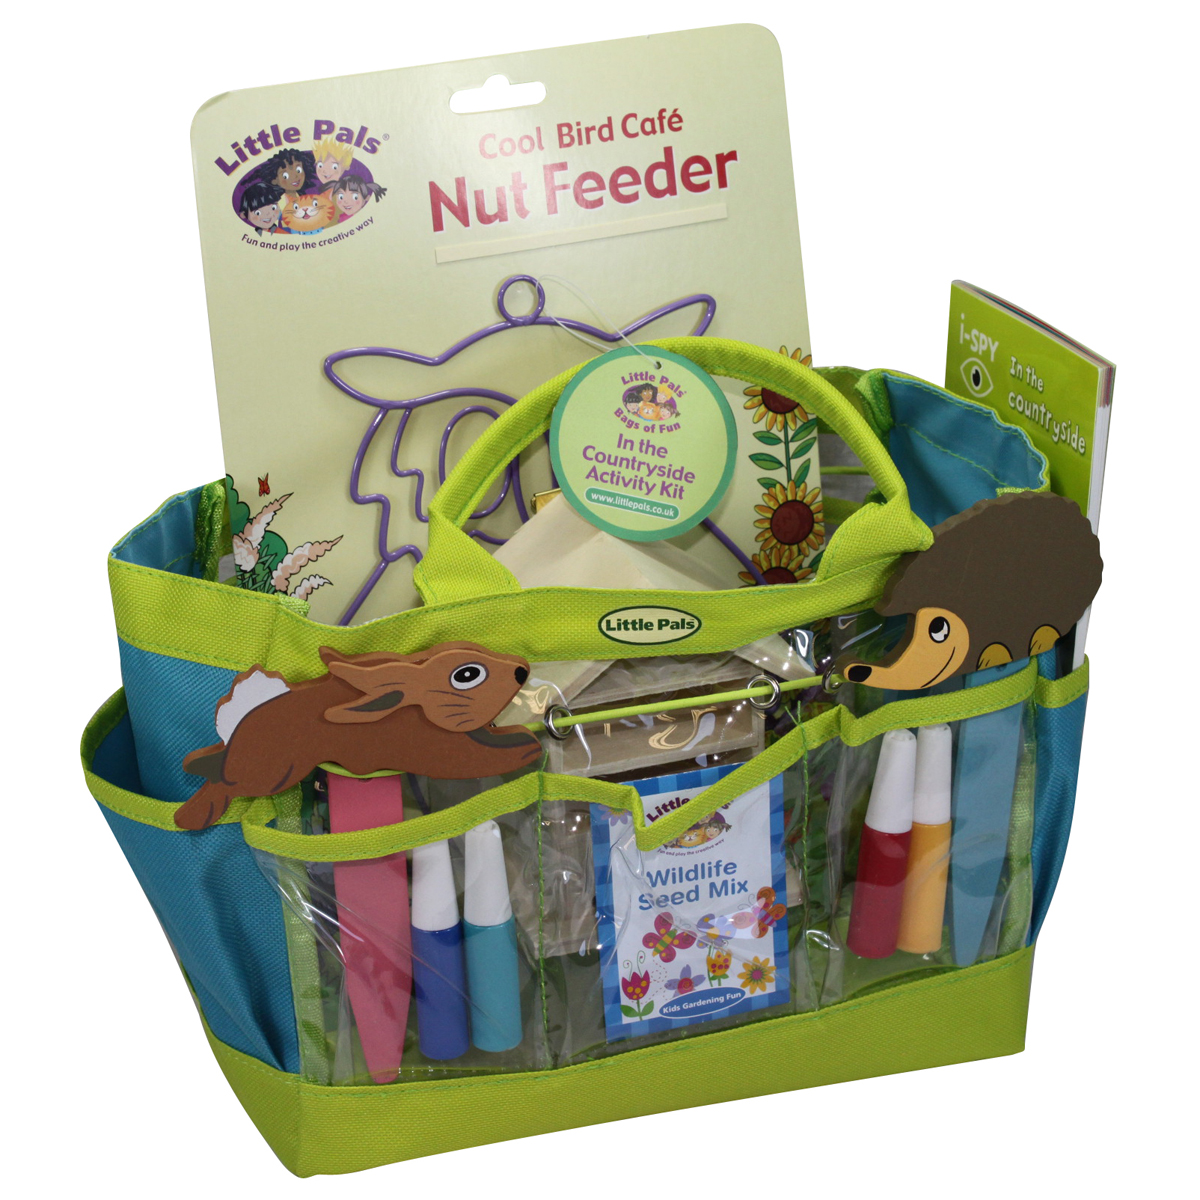 In the Countryside Activity Kit